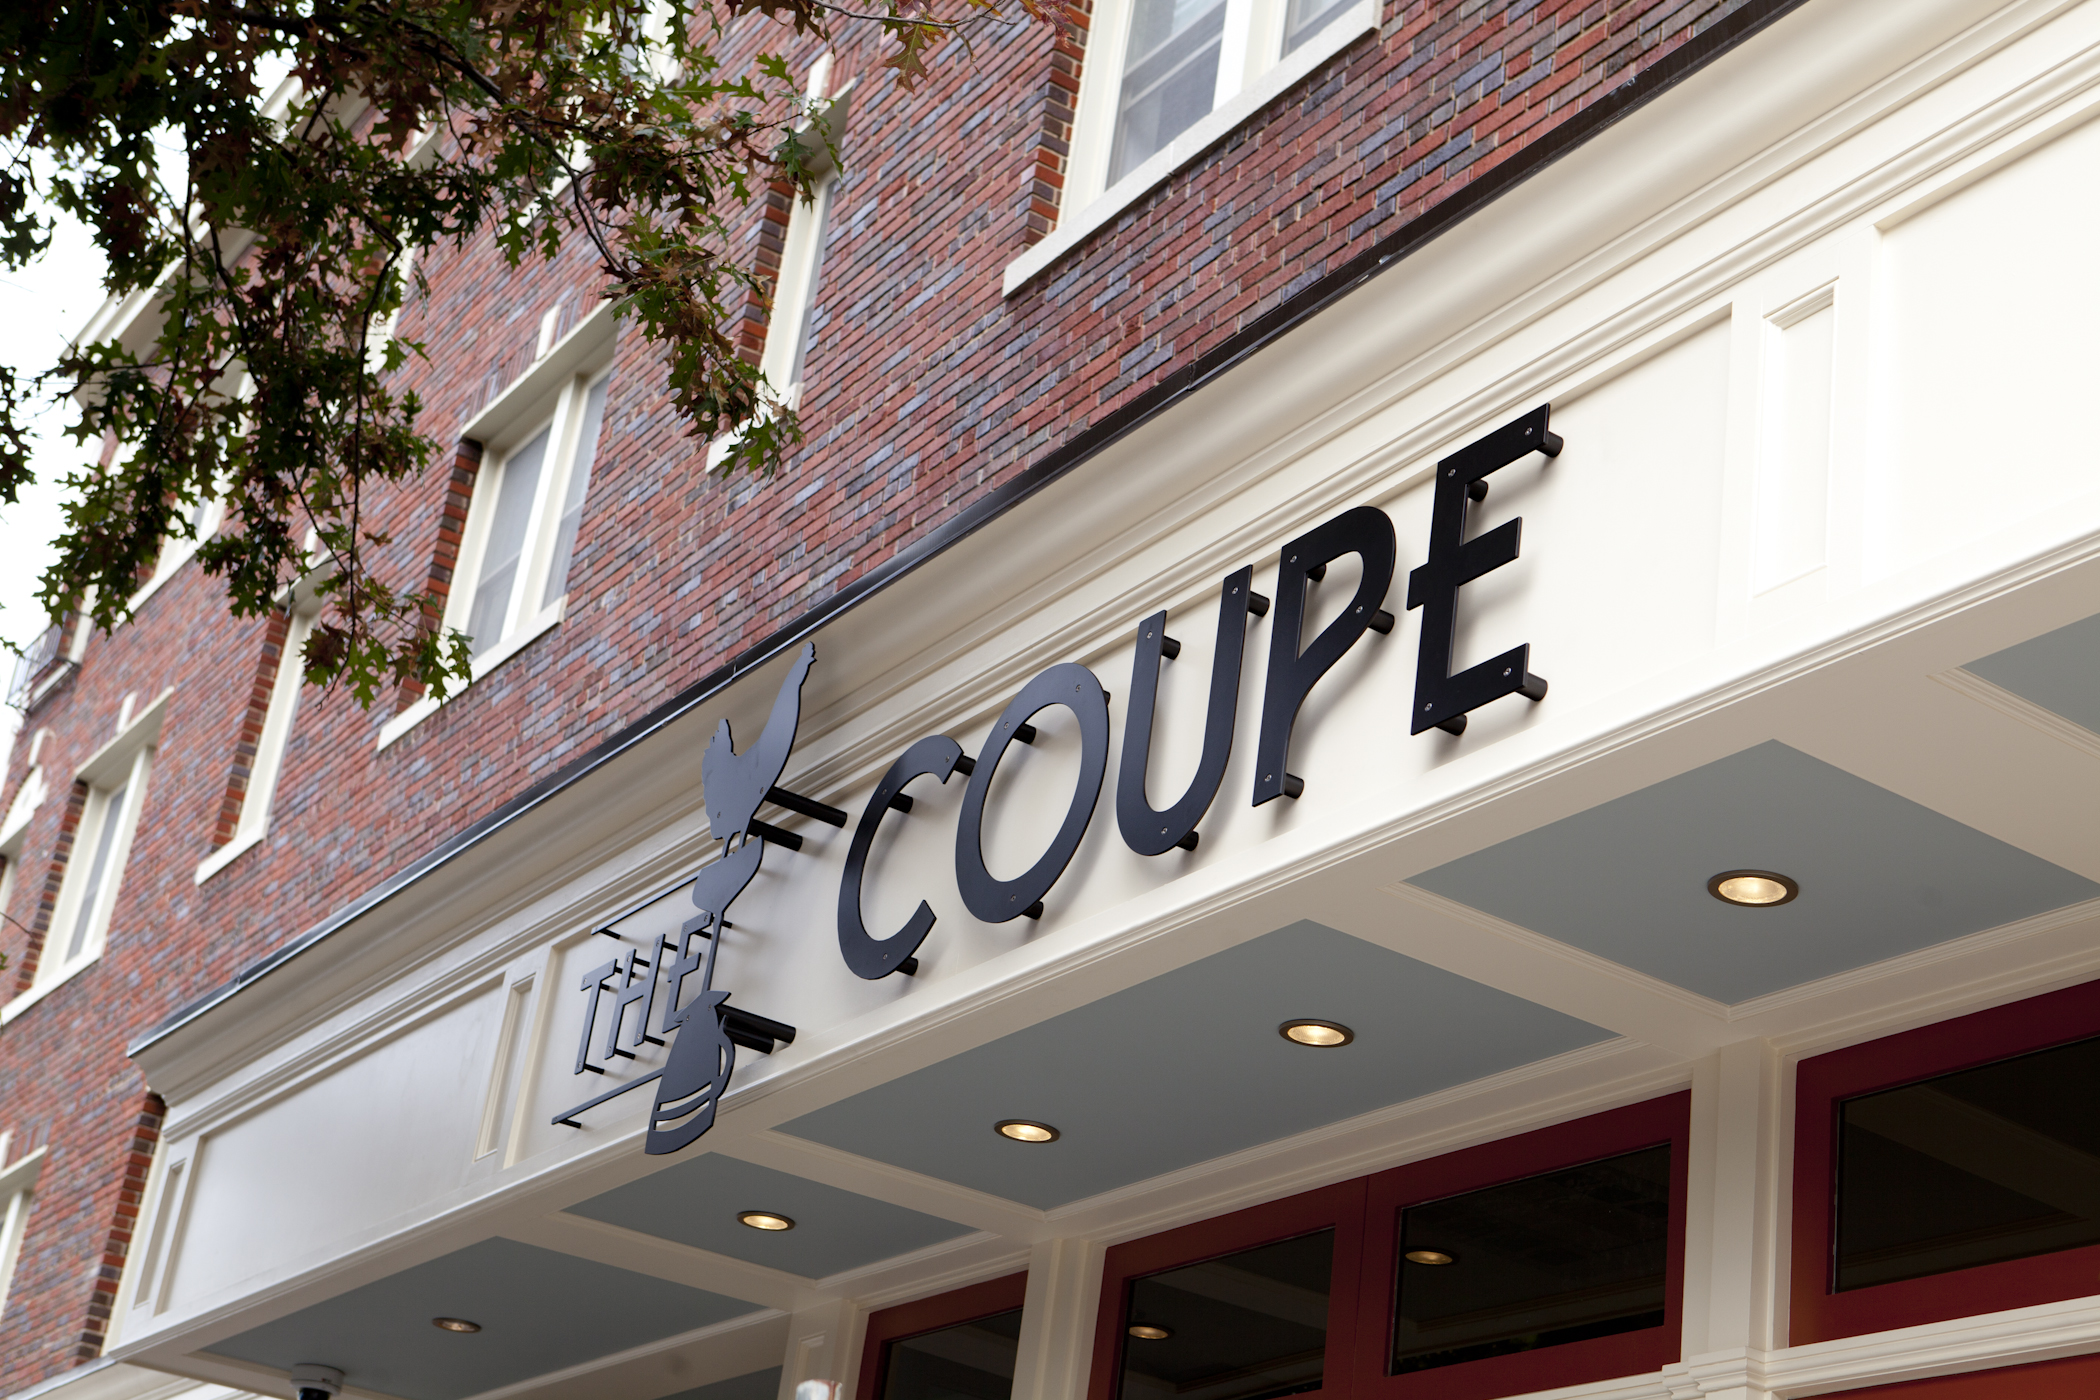 Coupe storefront